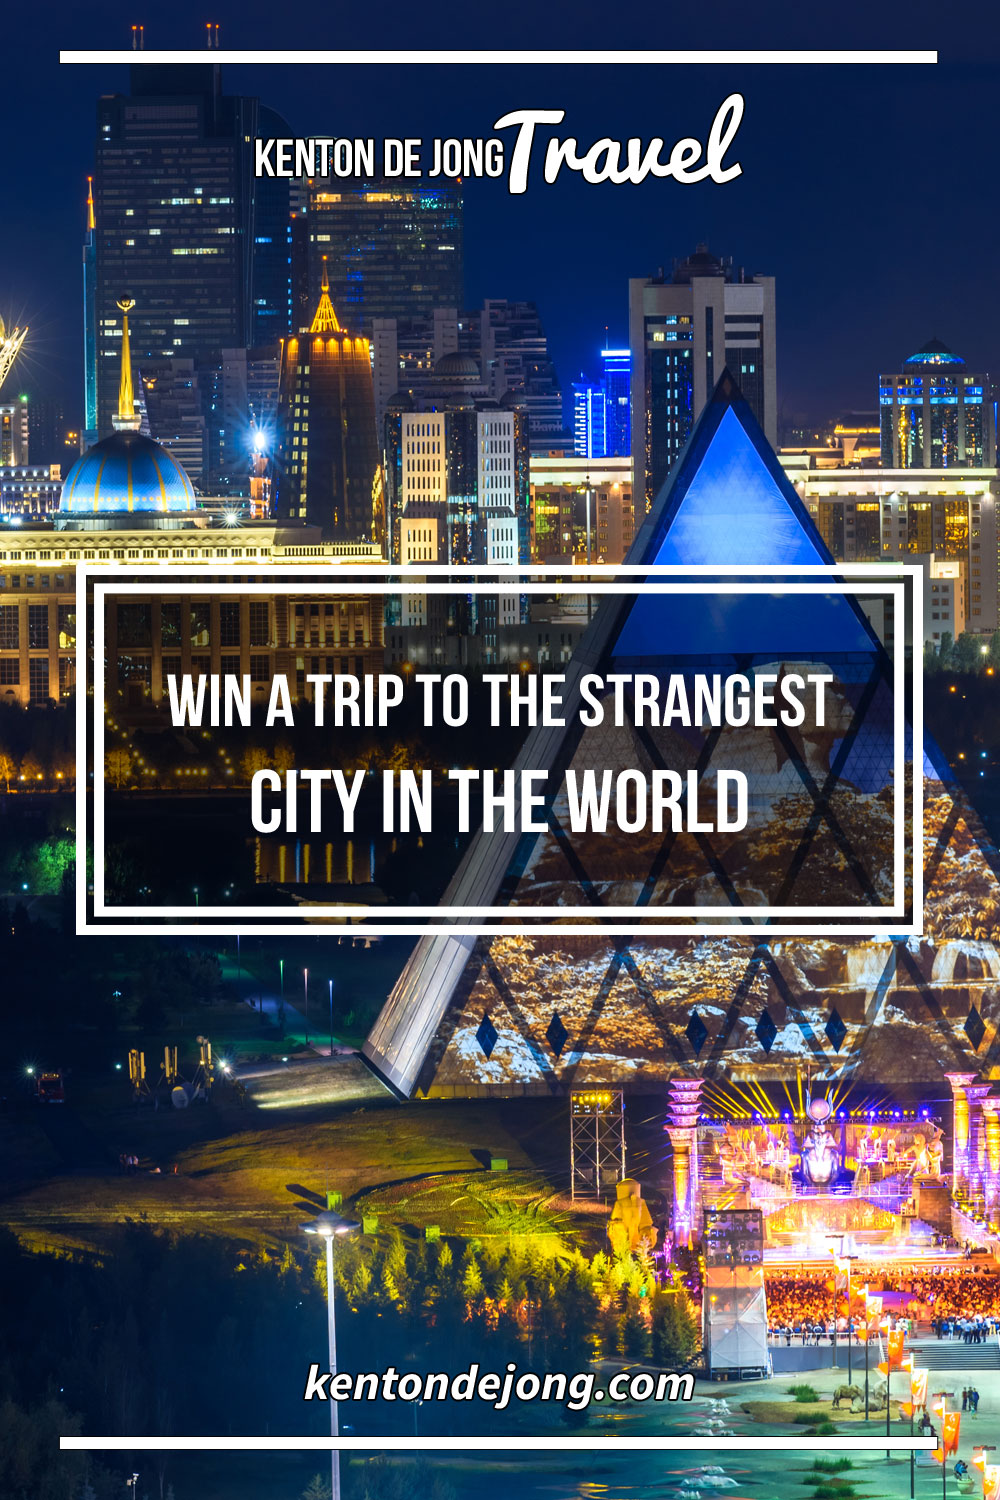 Win A Trip to the Strangest City in the World